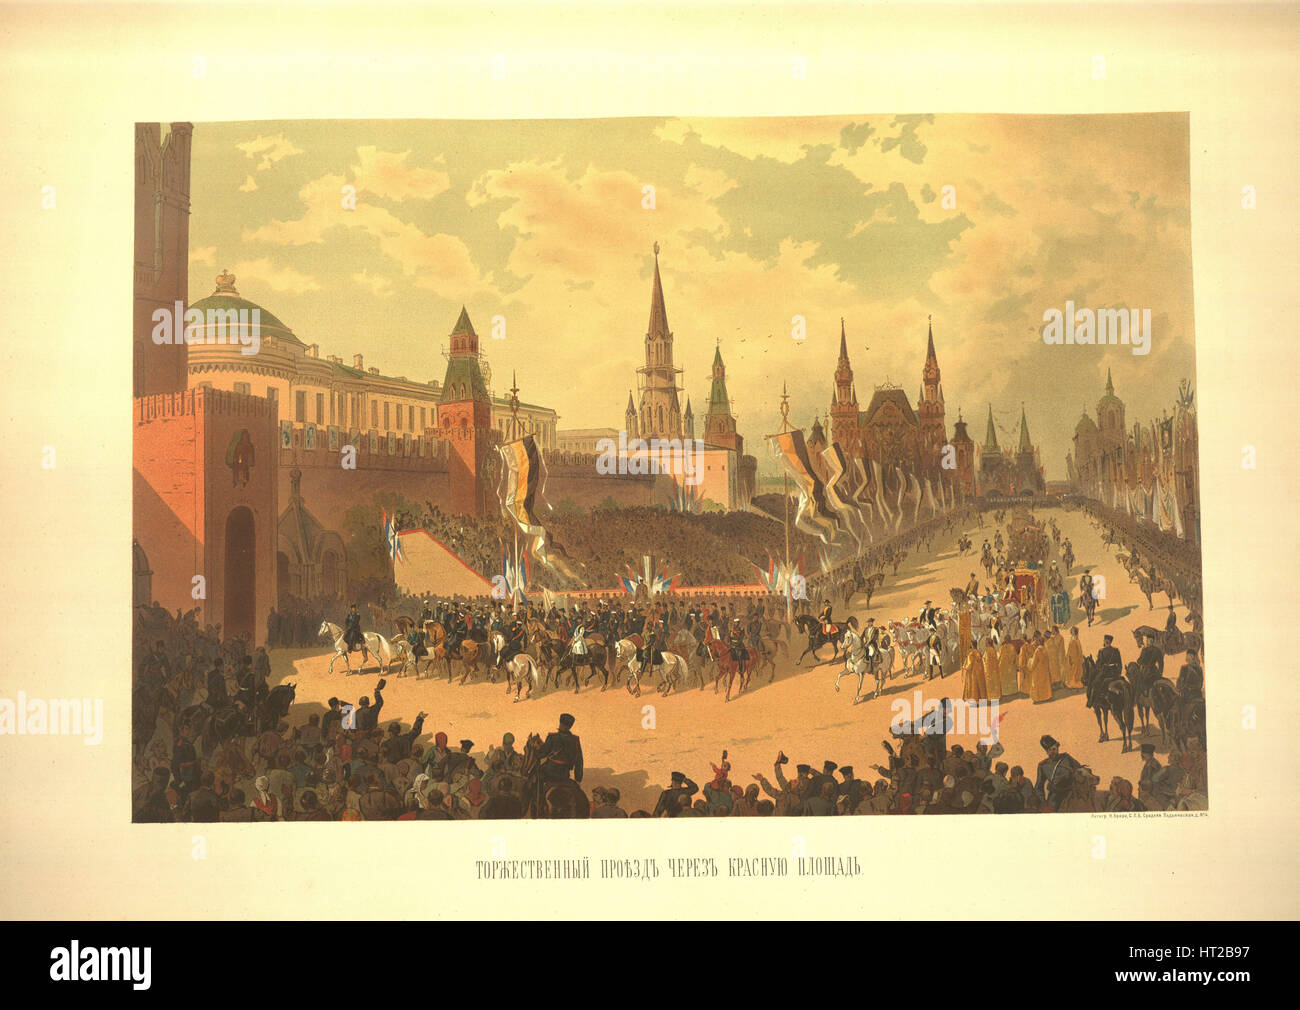 The Ceremonial Entry of Alexander III in the Red Square (From the Coronation Album), 1883. Artist: Karasin, Nikolai - Stock Image